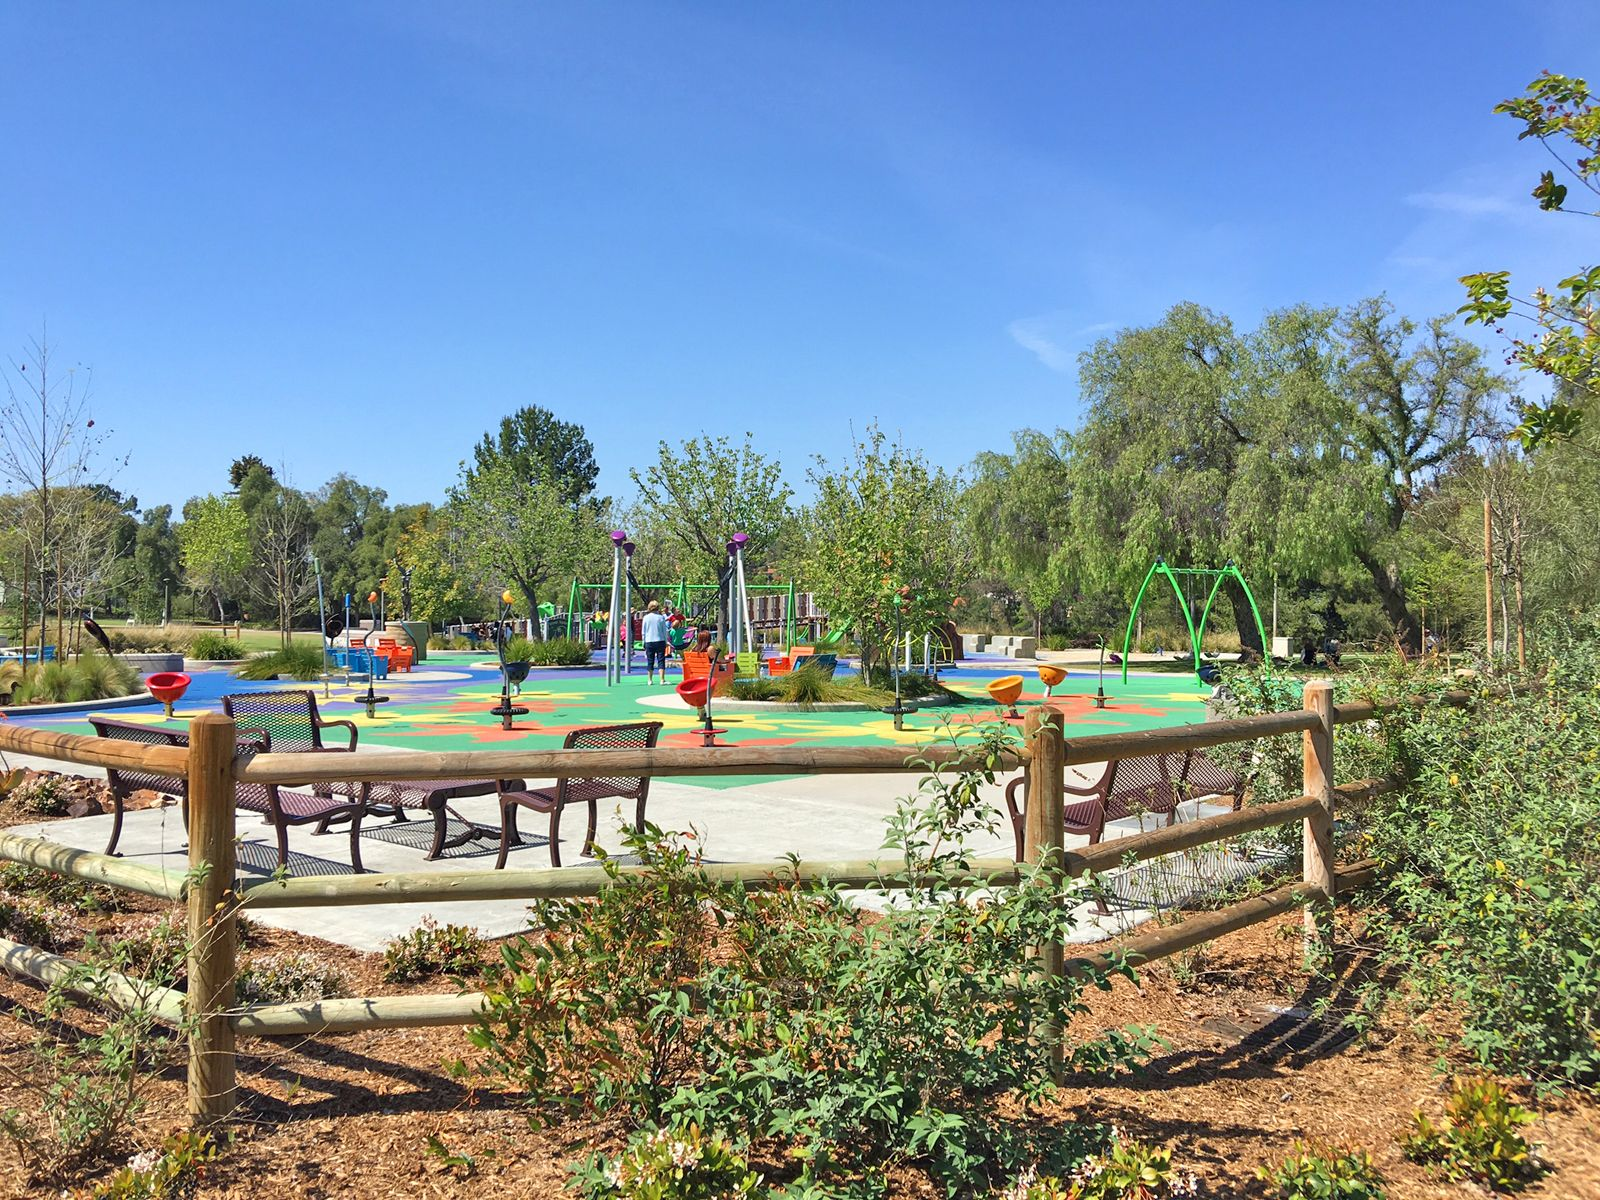 Pavion Park In Mission Viejo Great Park With Lots Of Diverse And